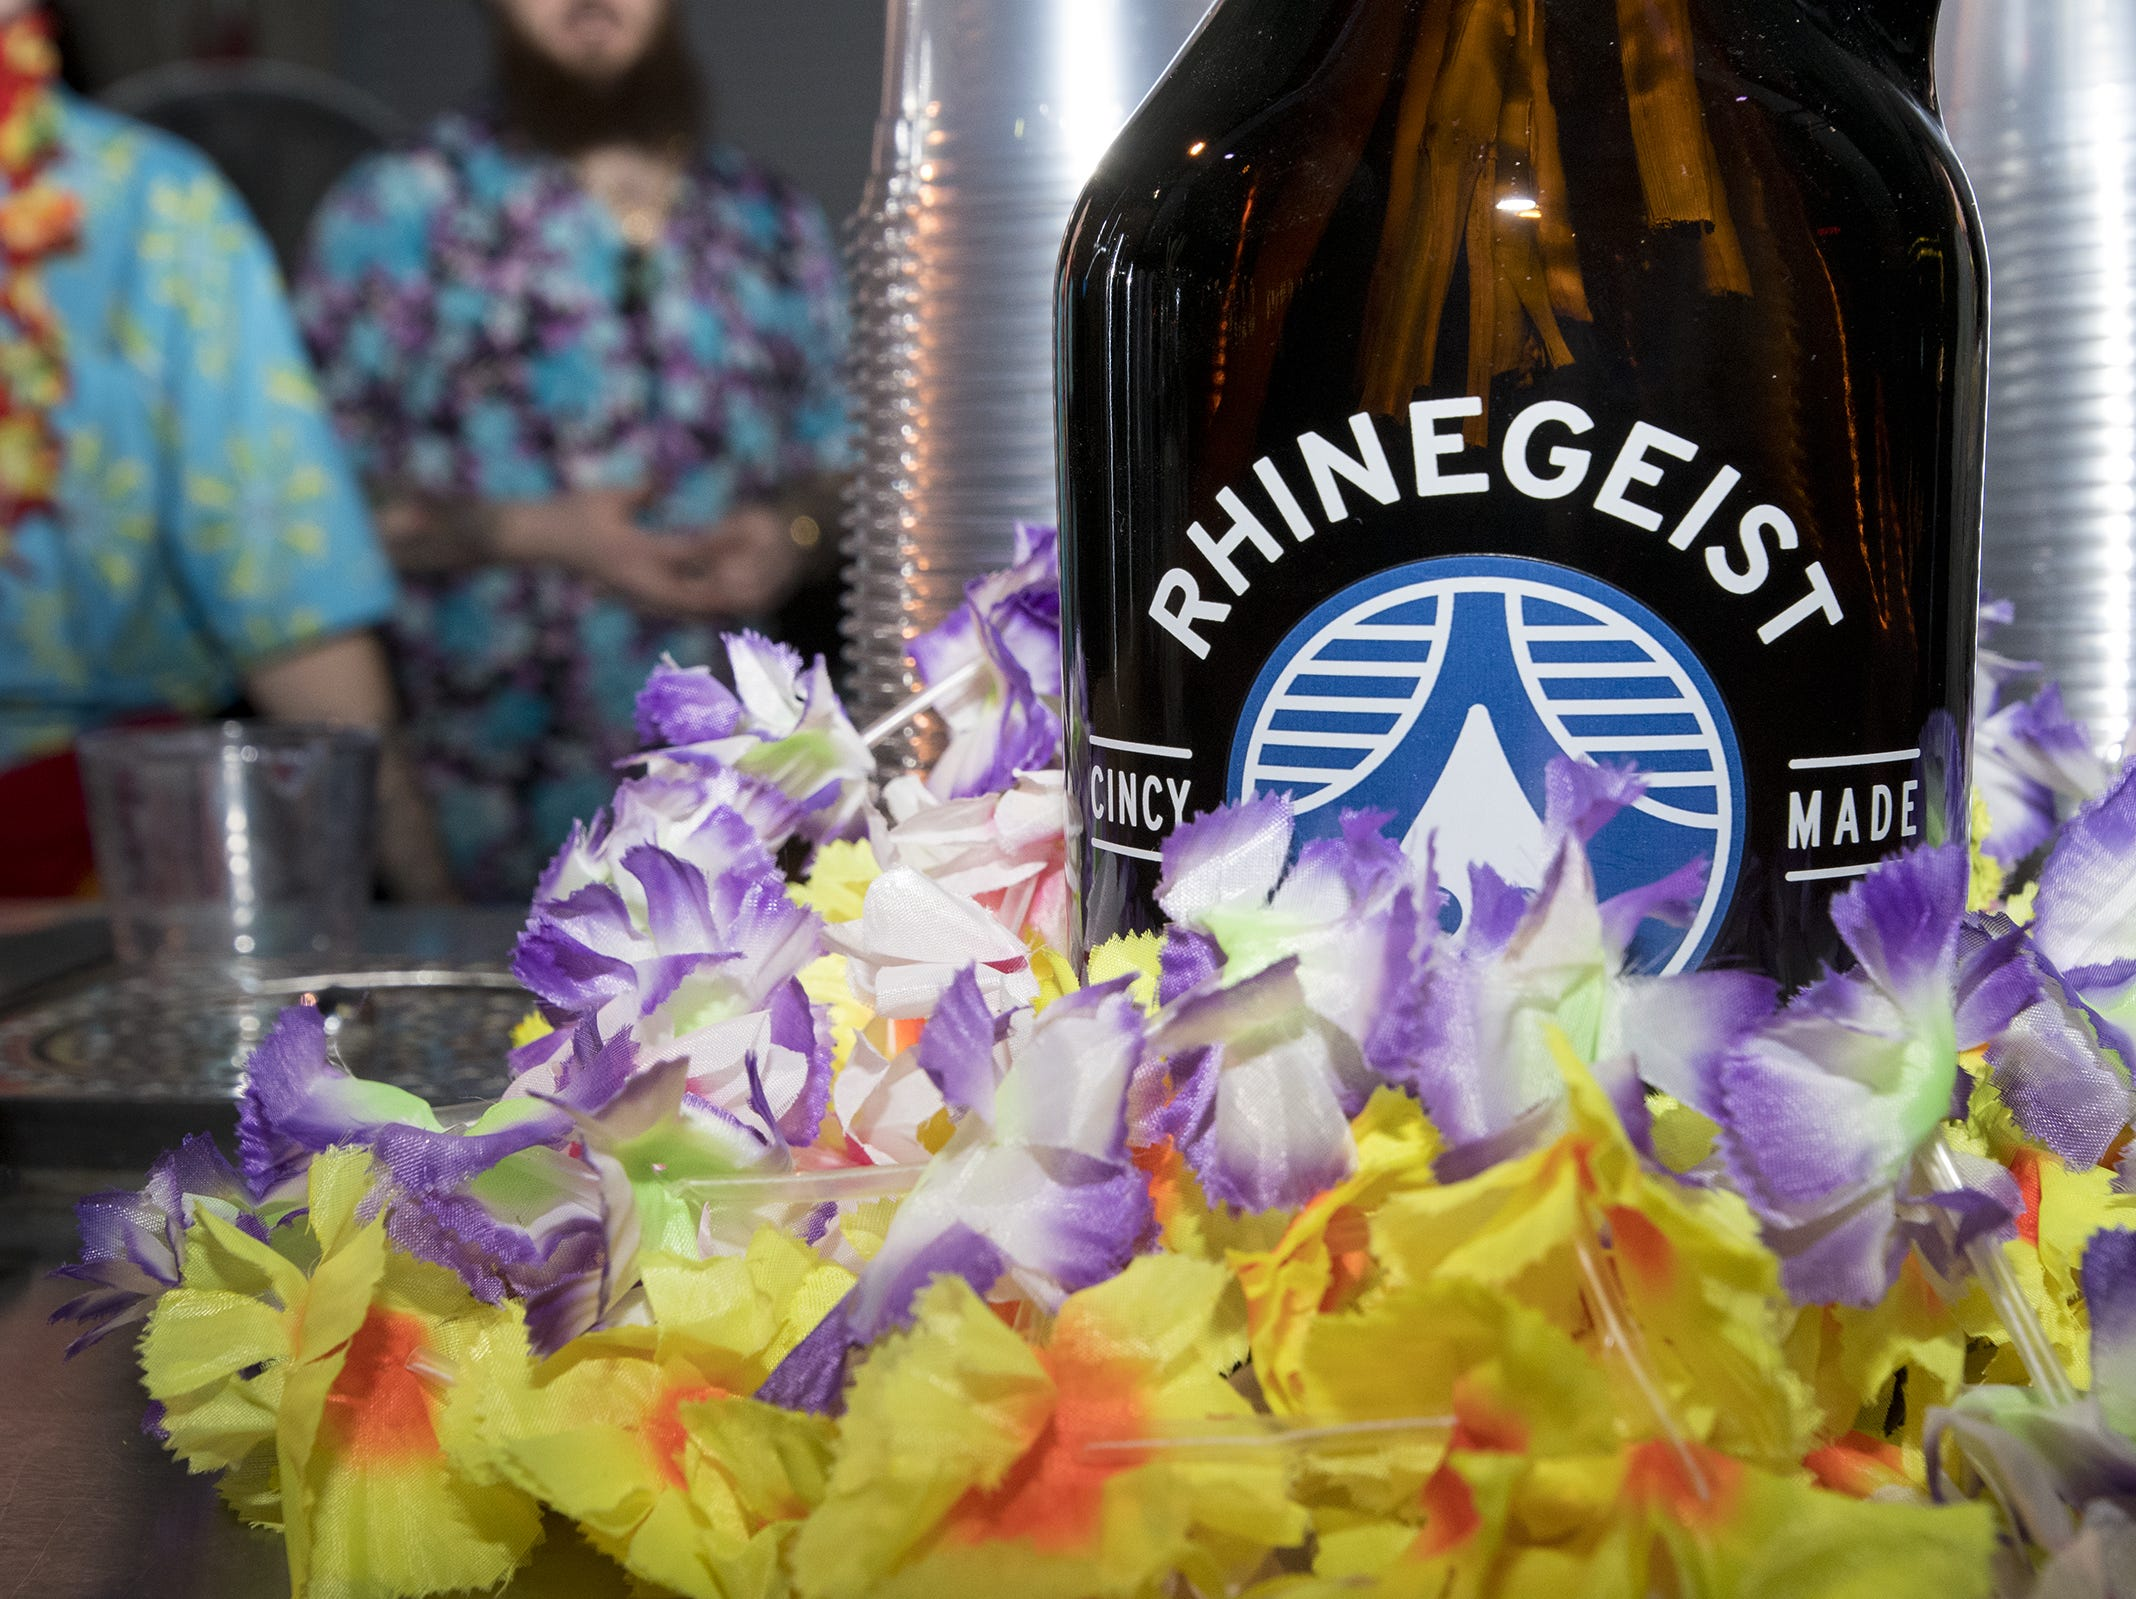 Leis decorate a special bar that serves up fruity creations during the tropical disco at Rhinegeist.